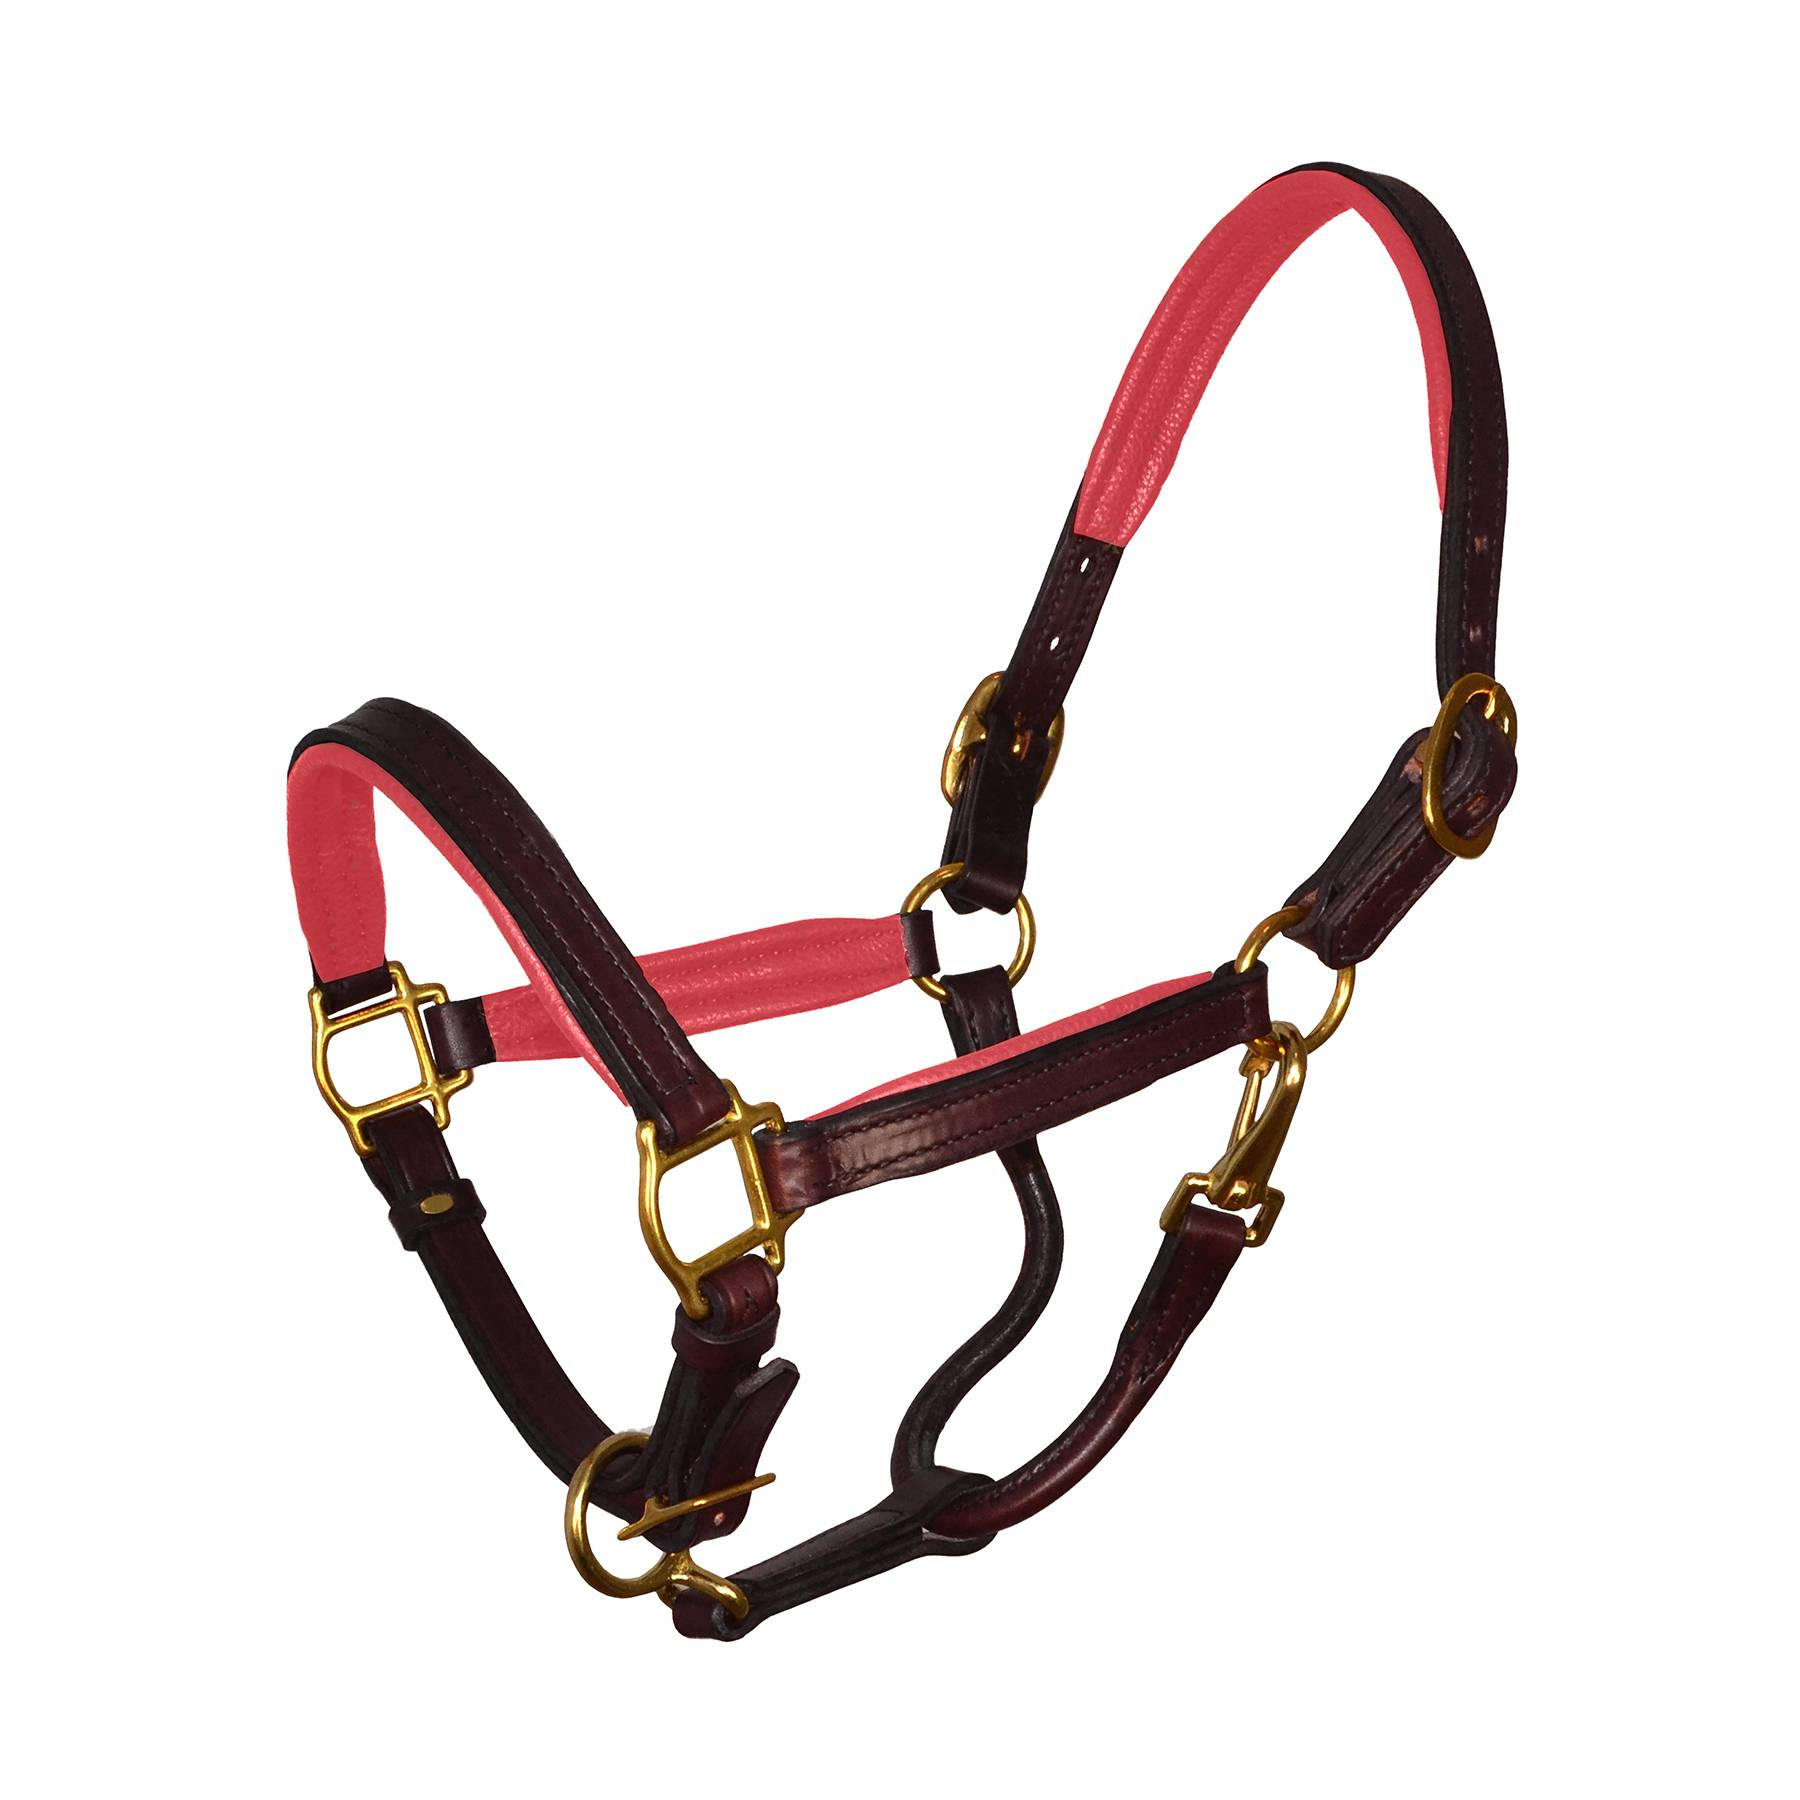 Perris Soft Padded Leather Halter